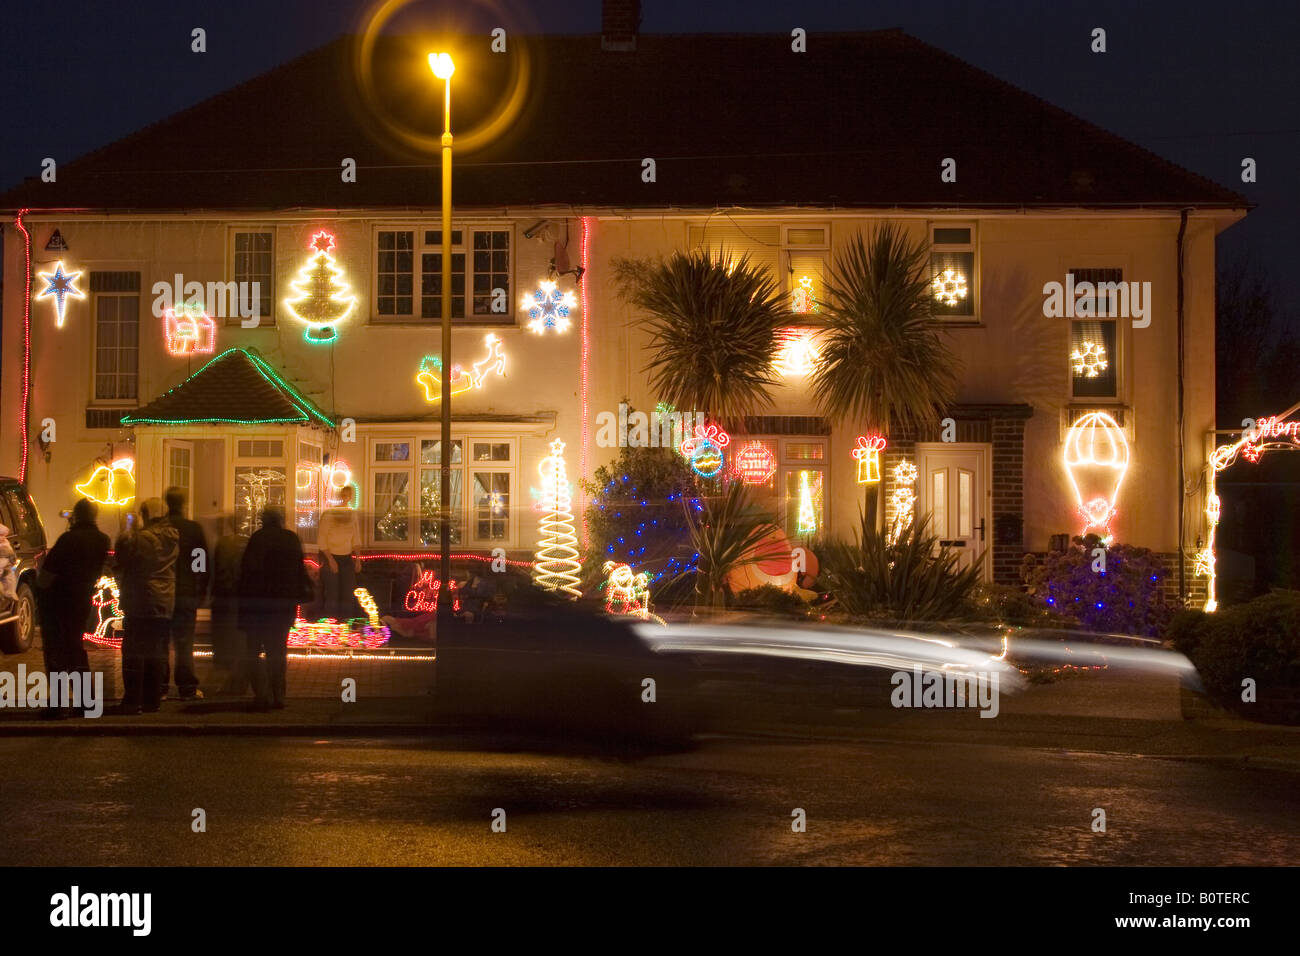 Christmas Lights On Houses Pictures.Christmas Lights Decorating Houses In A Street In England